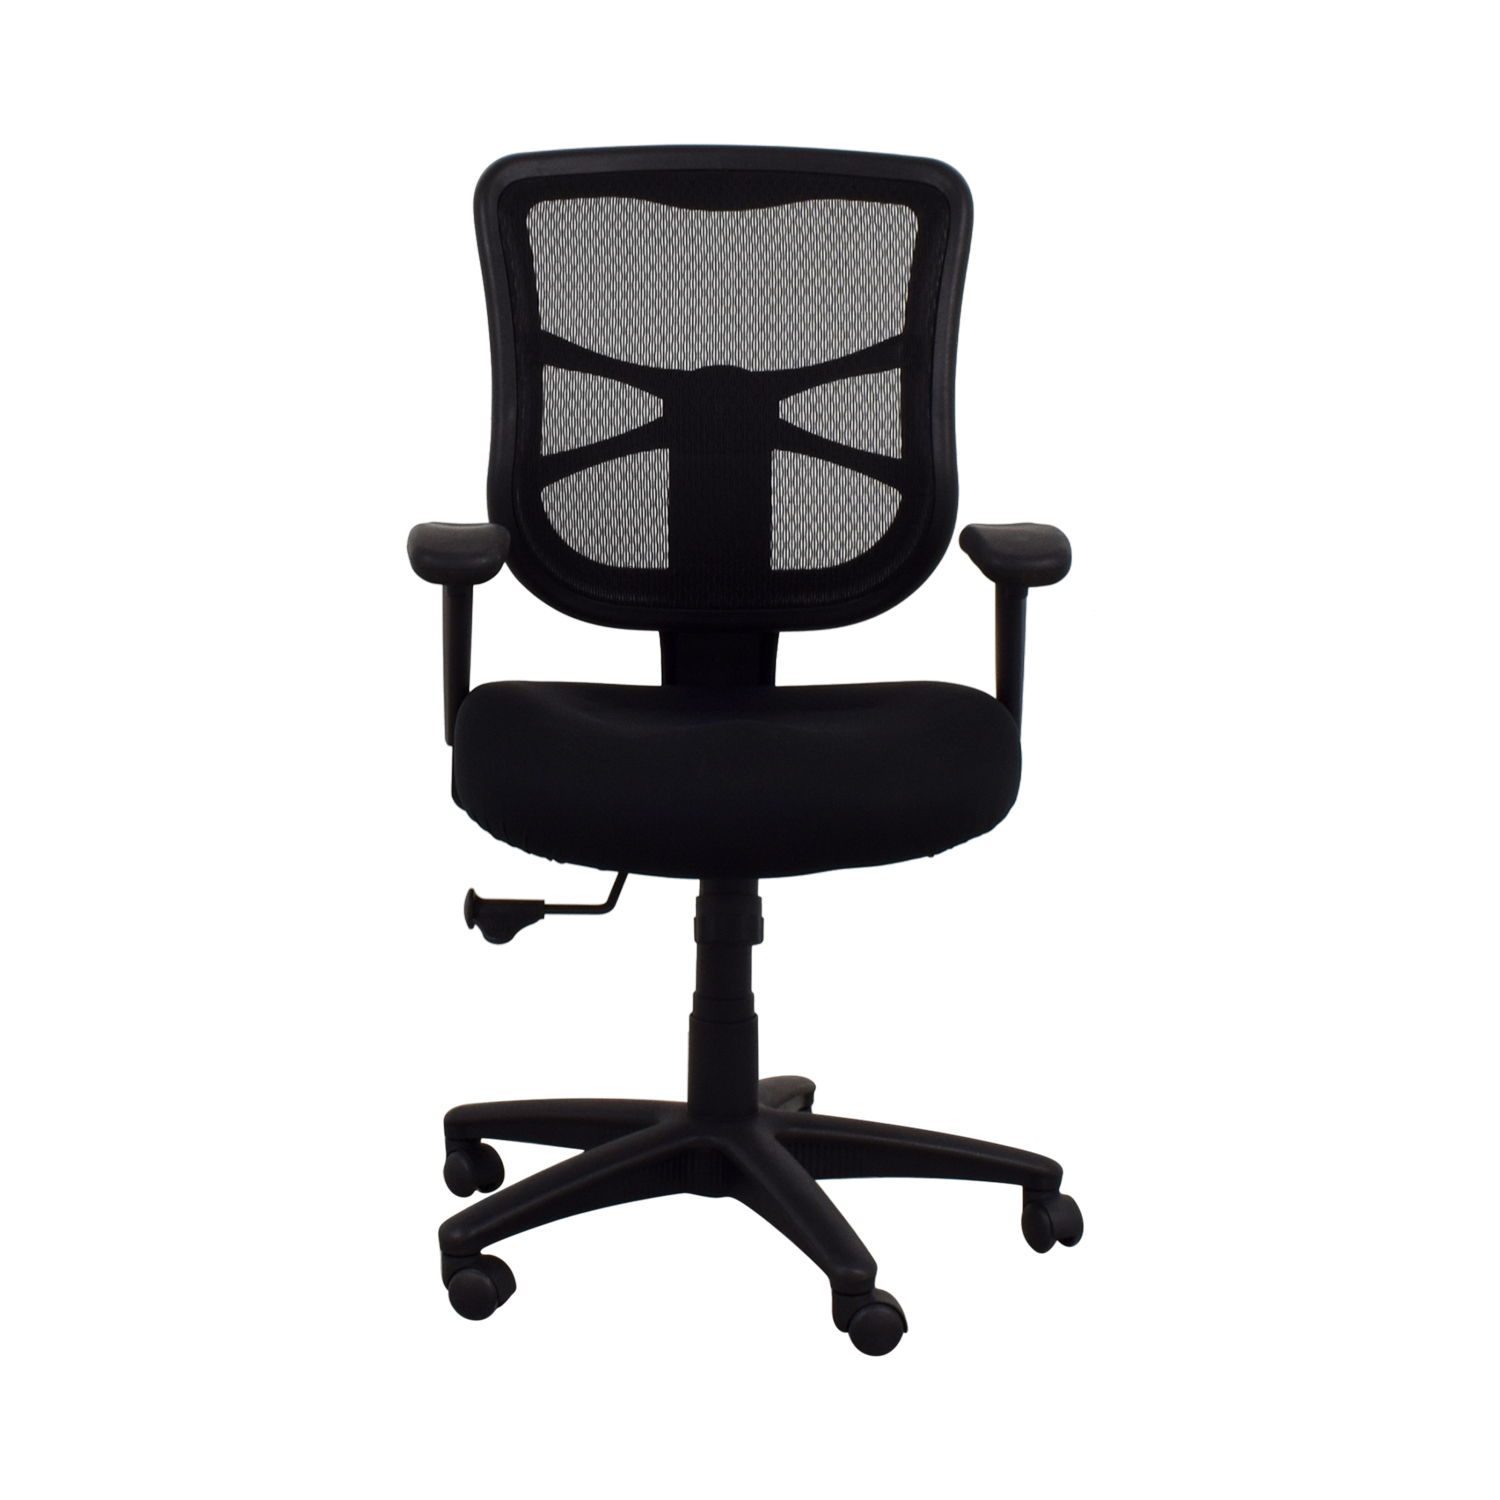 Staples Staples Adjustable Desk Chair second hand  sc 1 st  Kaiyo & 53% OFF - Staples Staples Adjustable Desk Chair / Chairs